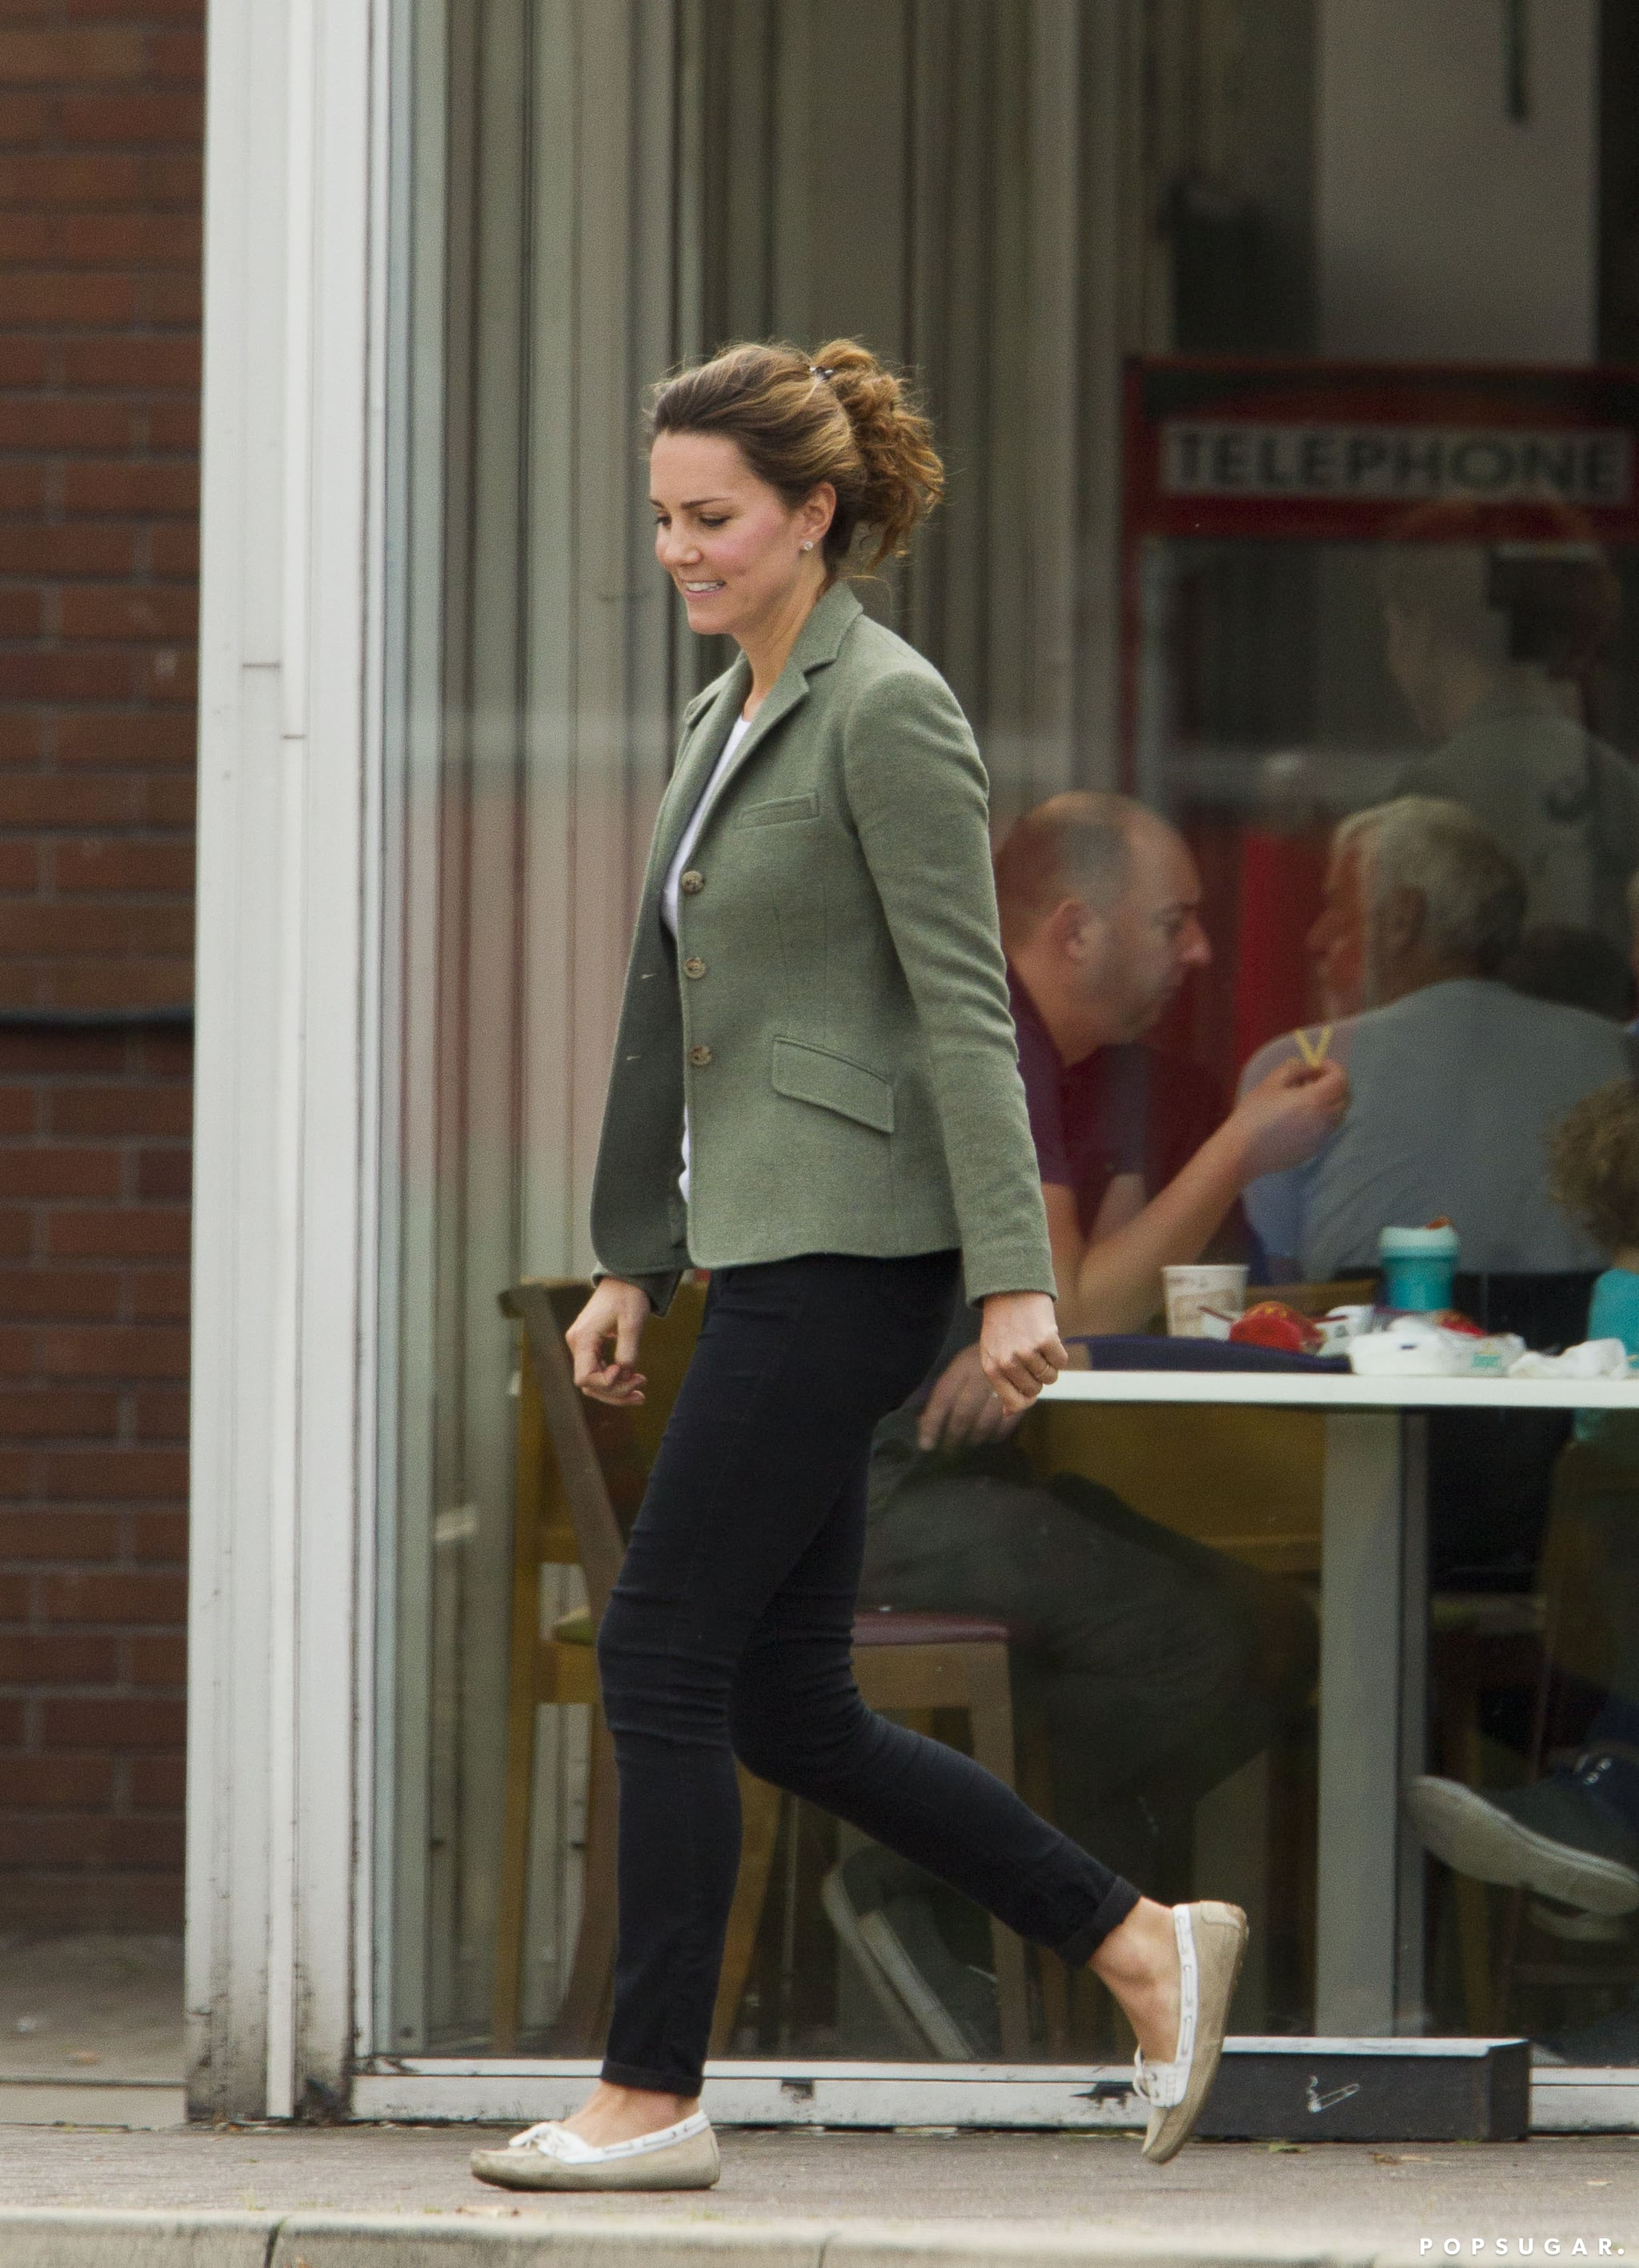 Kate Middleton wore a green blazer.